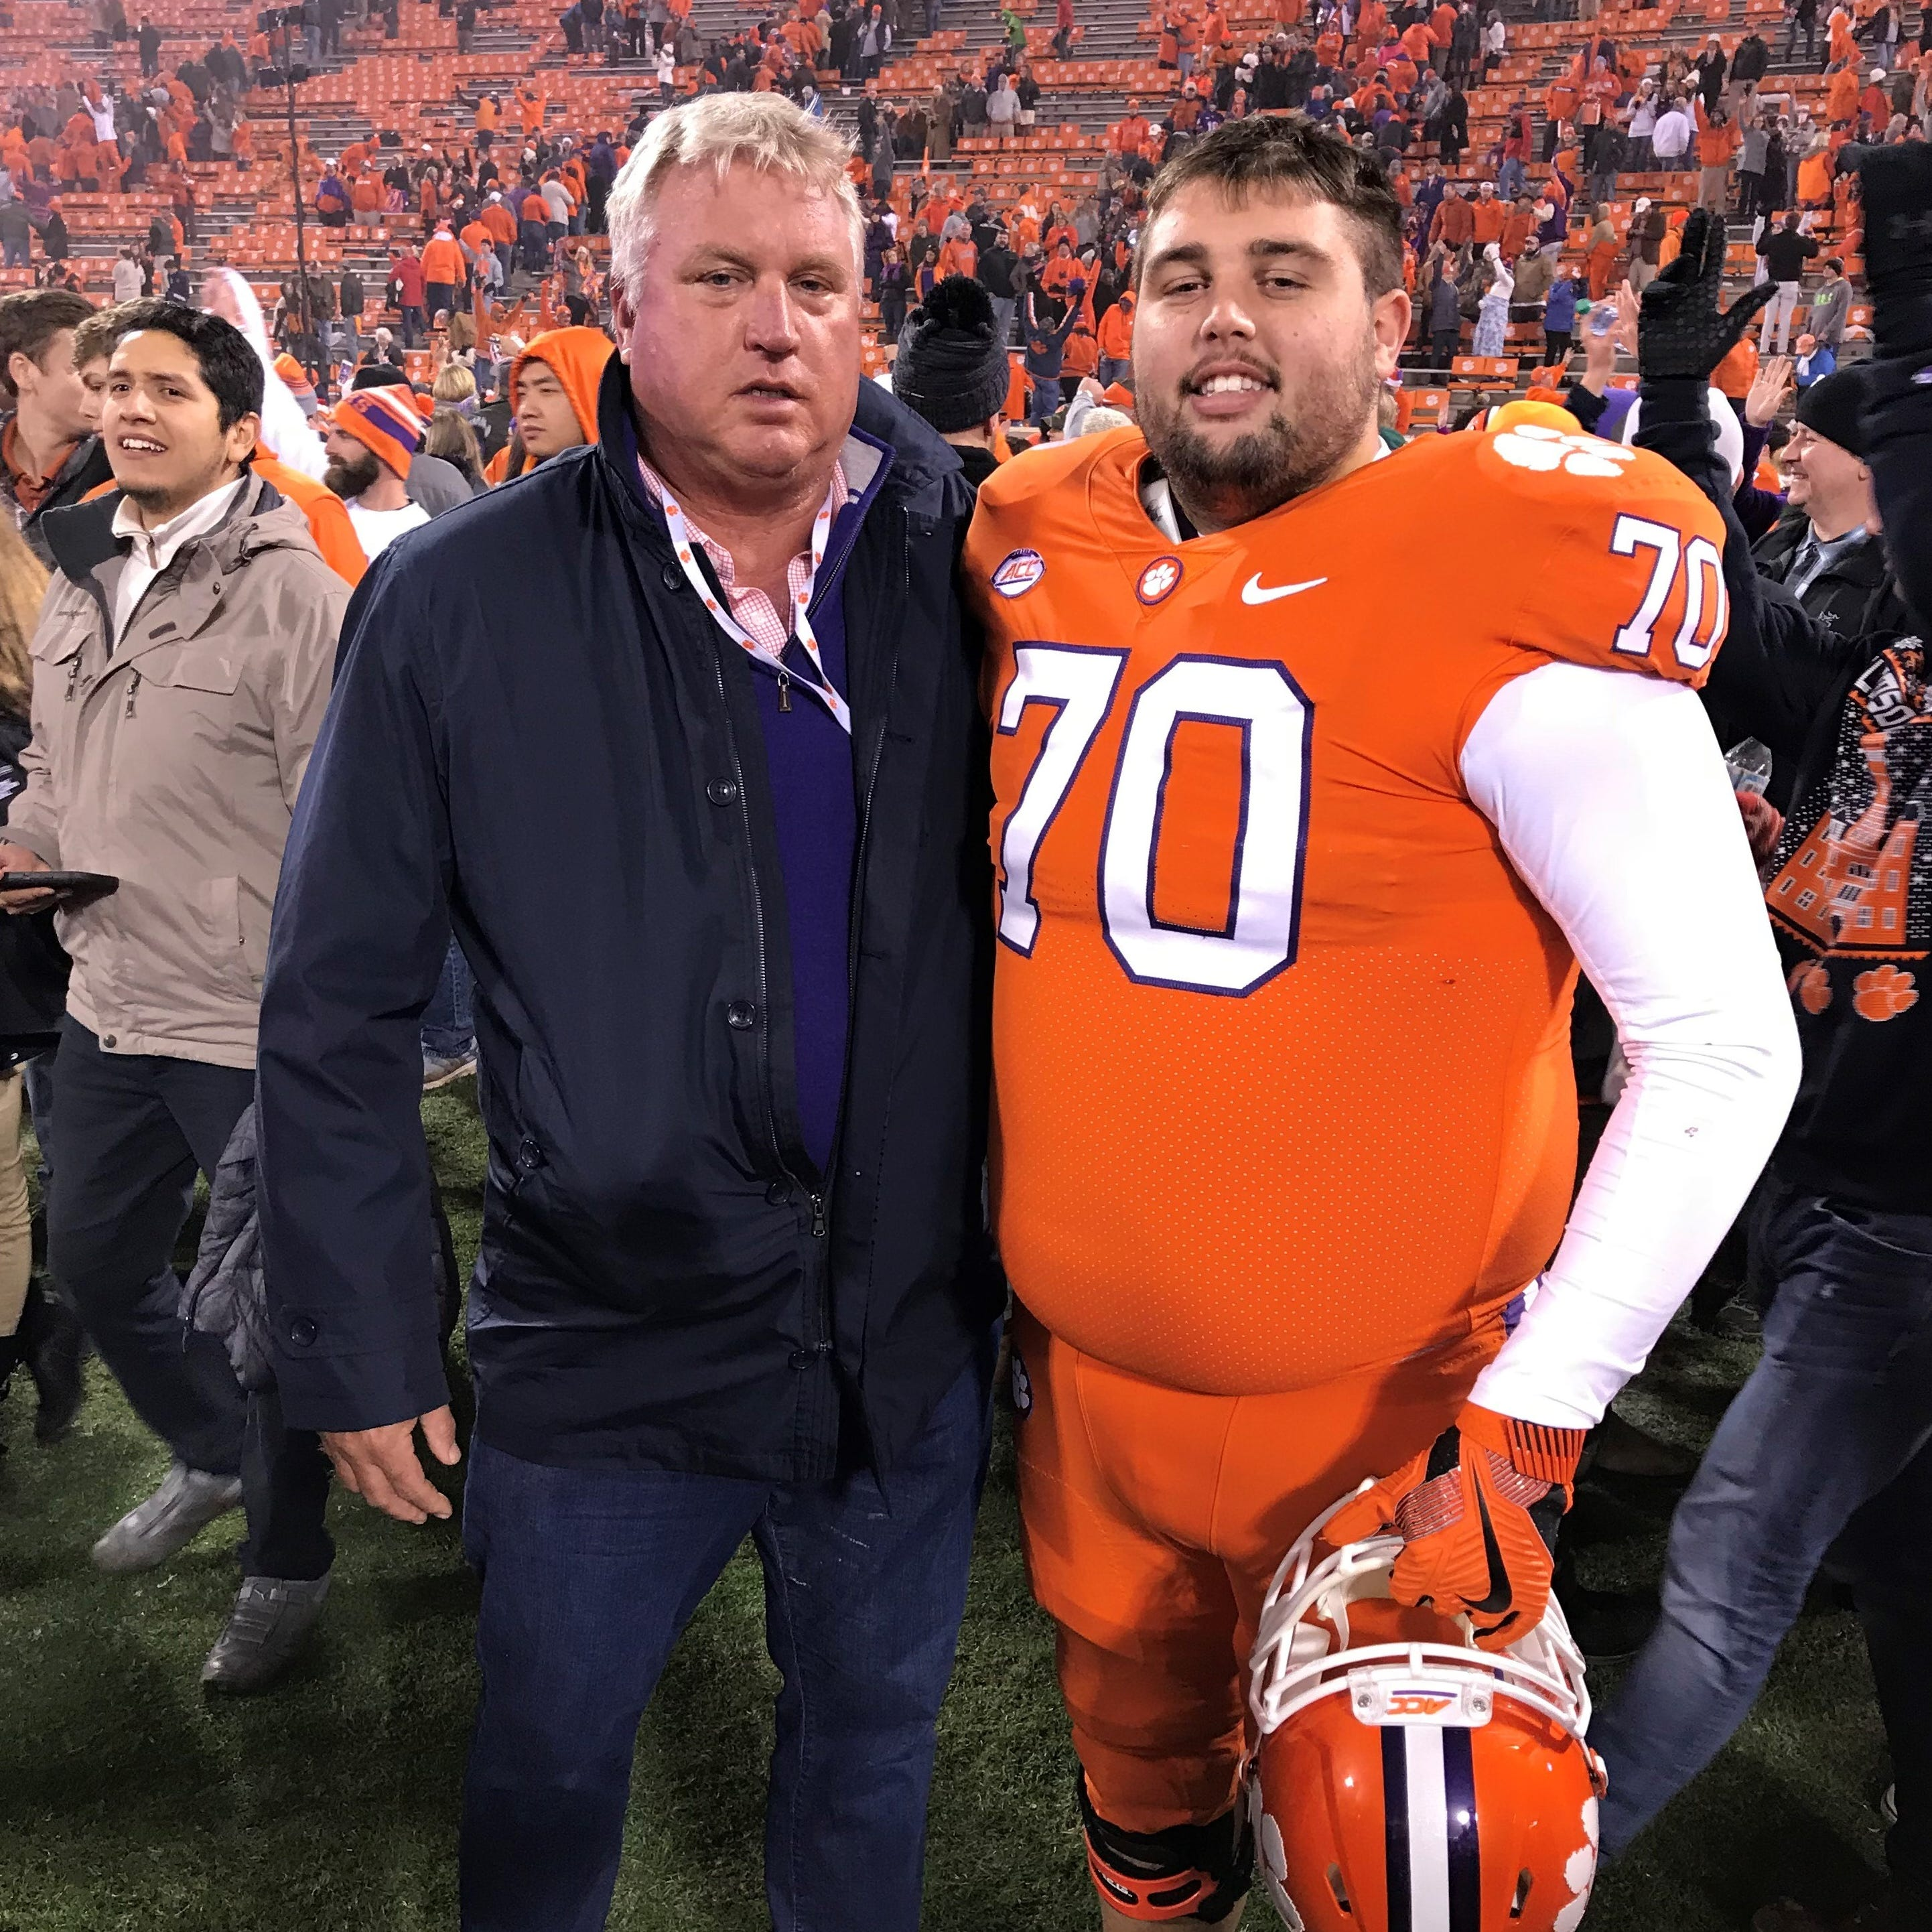 College football: FBA grad Penner goes for second title with Clemson before walking away